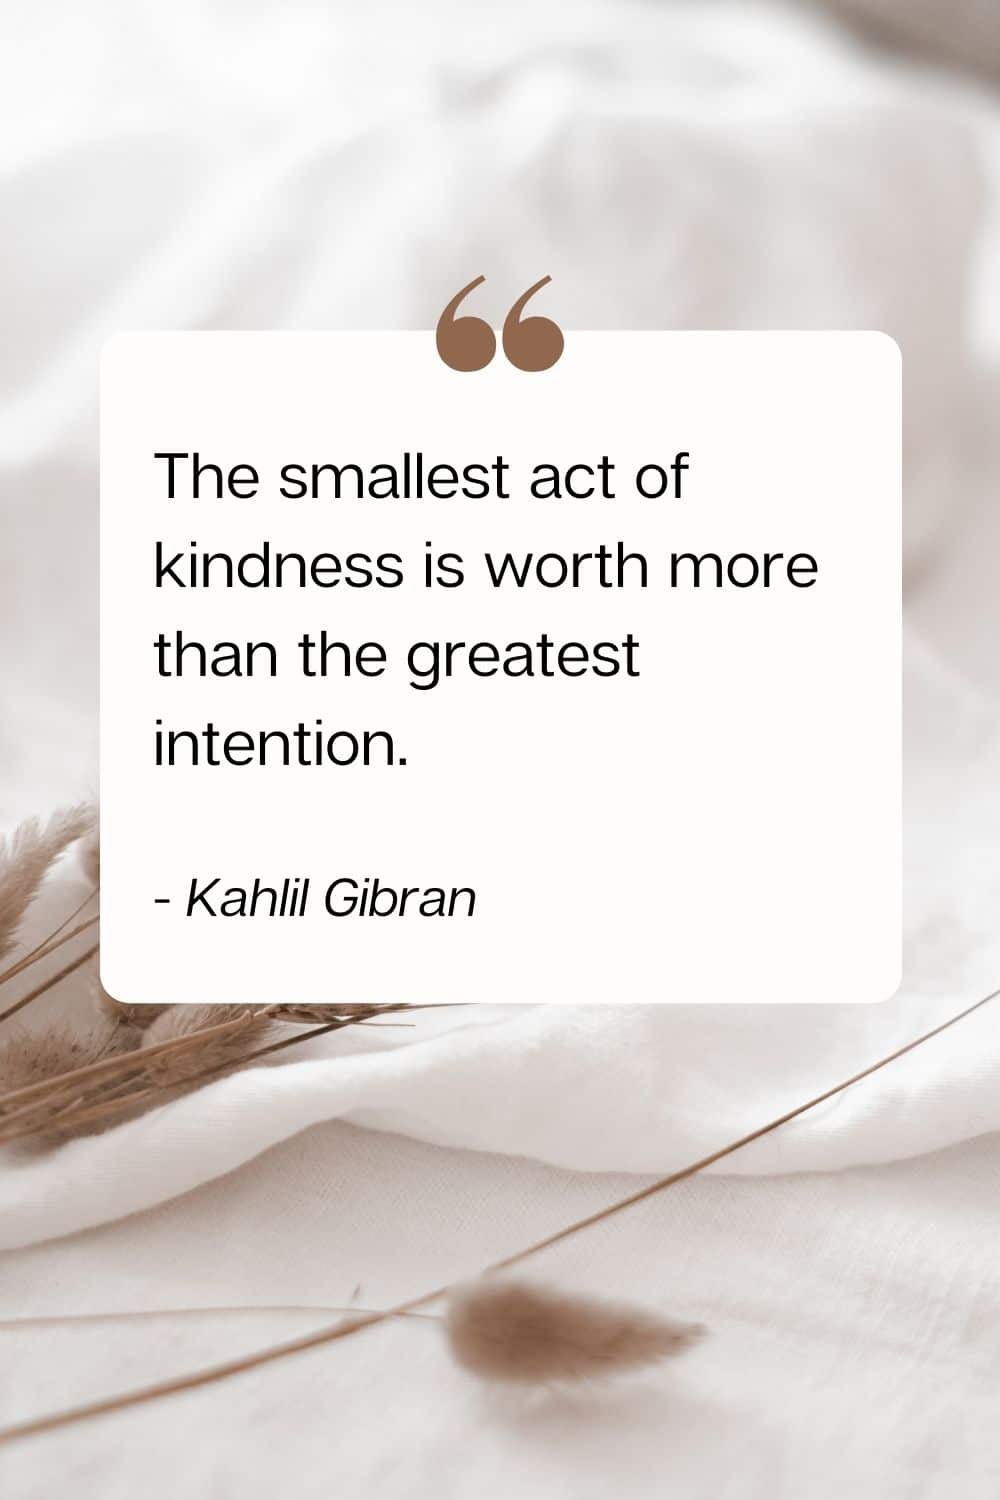 quote - The smallest act of kindness is worth more than the greatest intention. - Kahlil Gibran